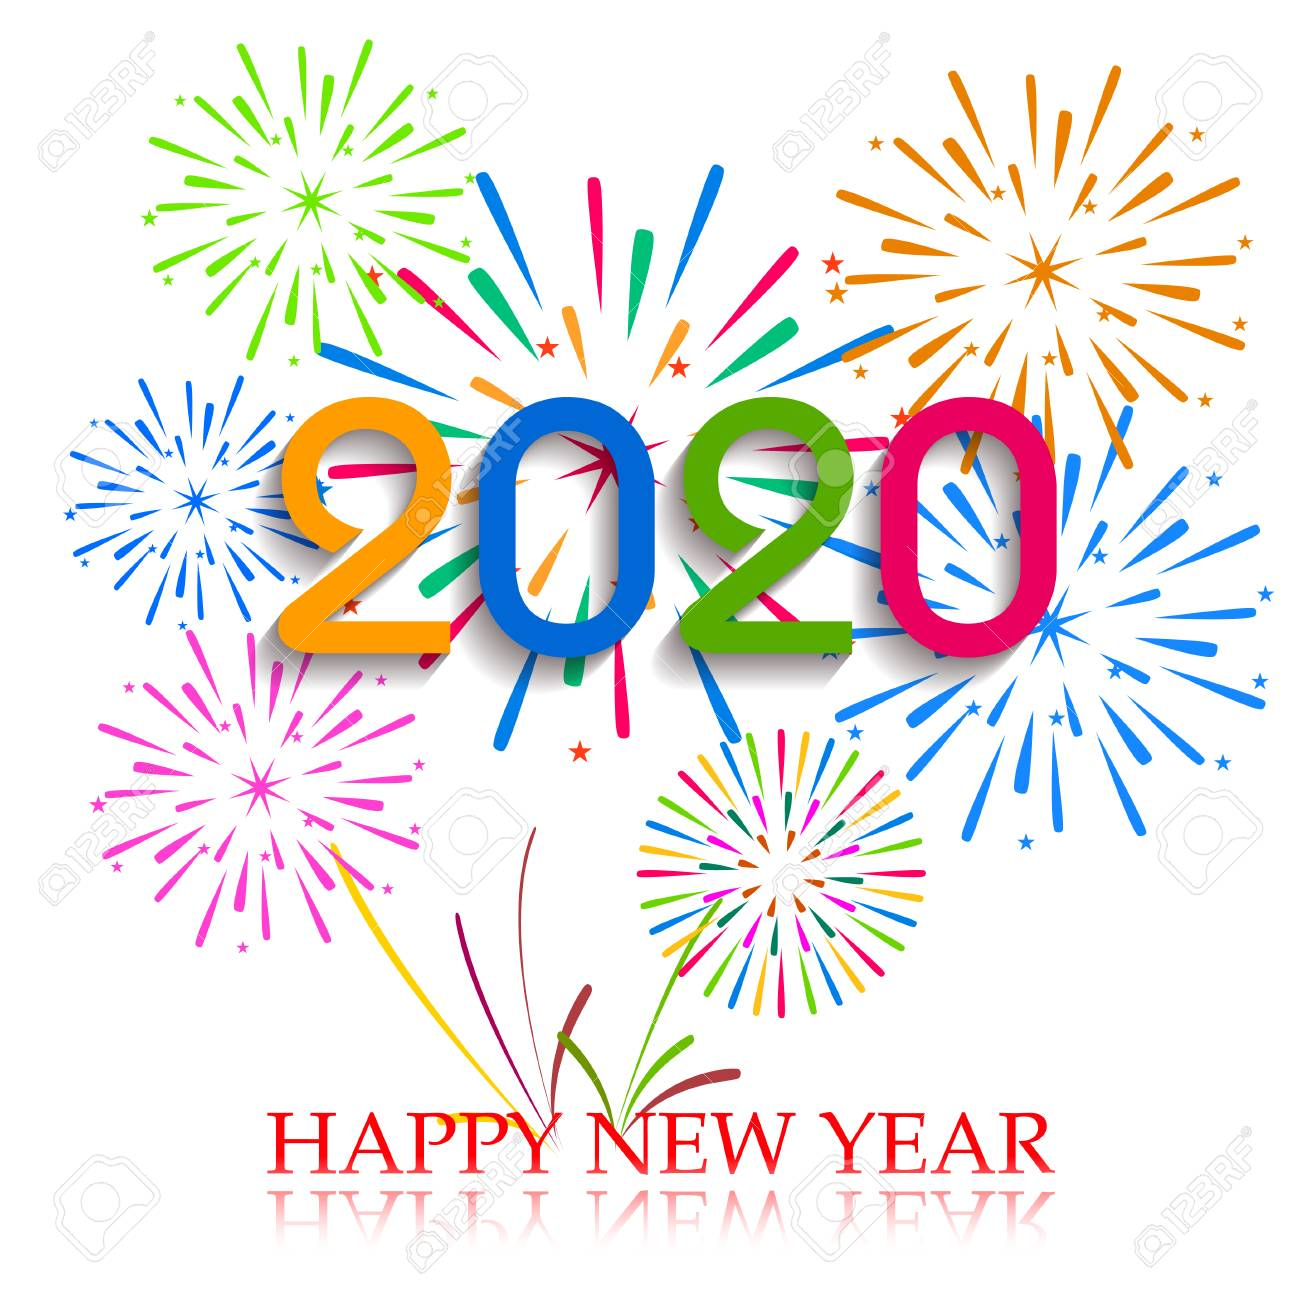 Happy New Year 2020 Images.Happy New Year 2020 Background With Fireworks